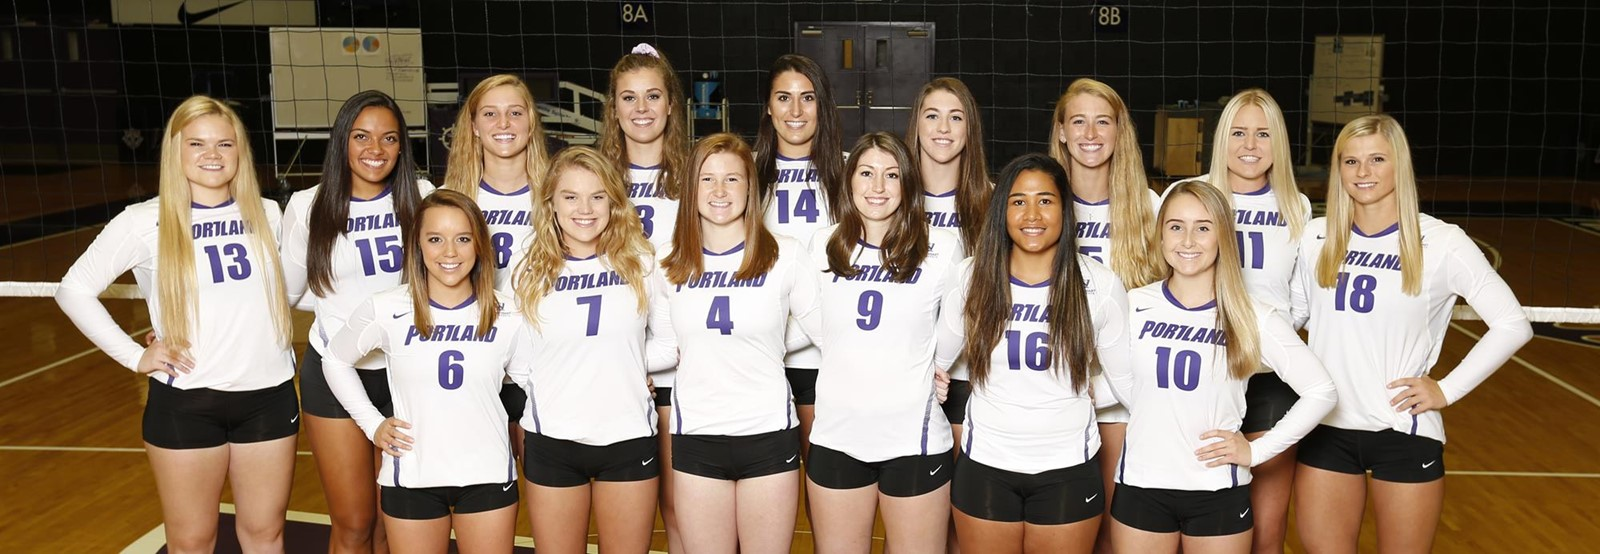 2017 Volleyball Roster University Of Portland Athletics